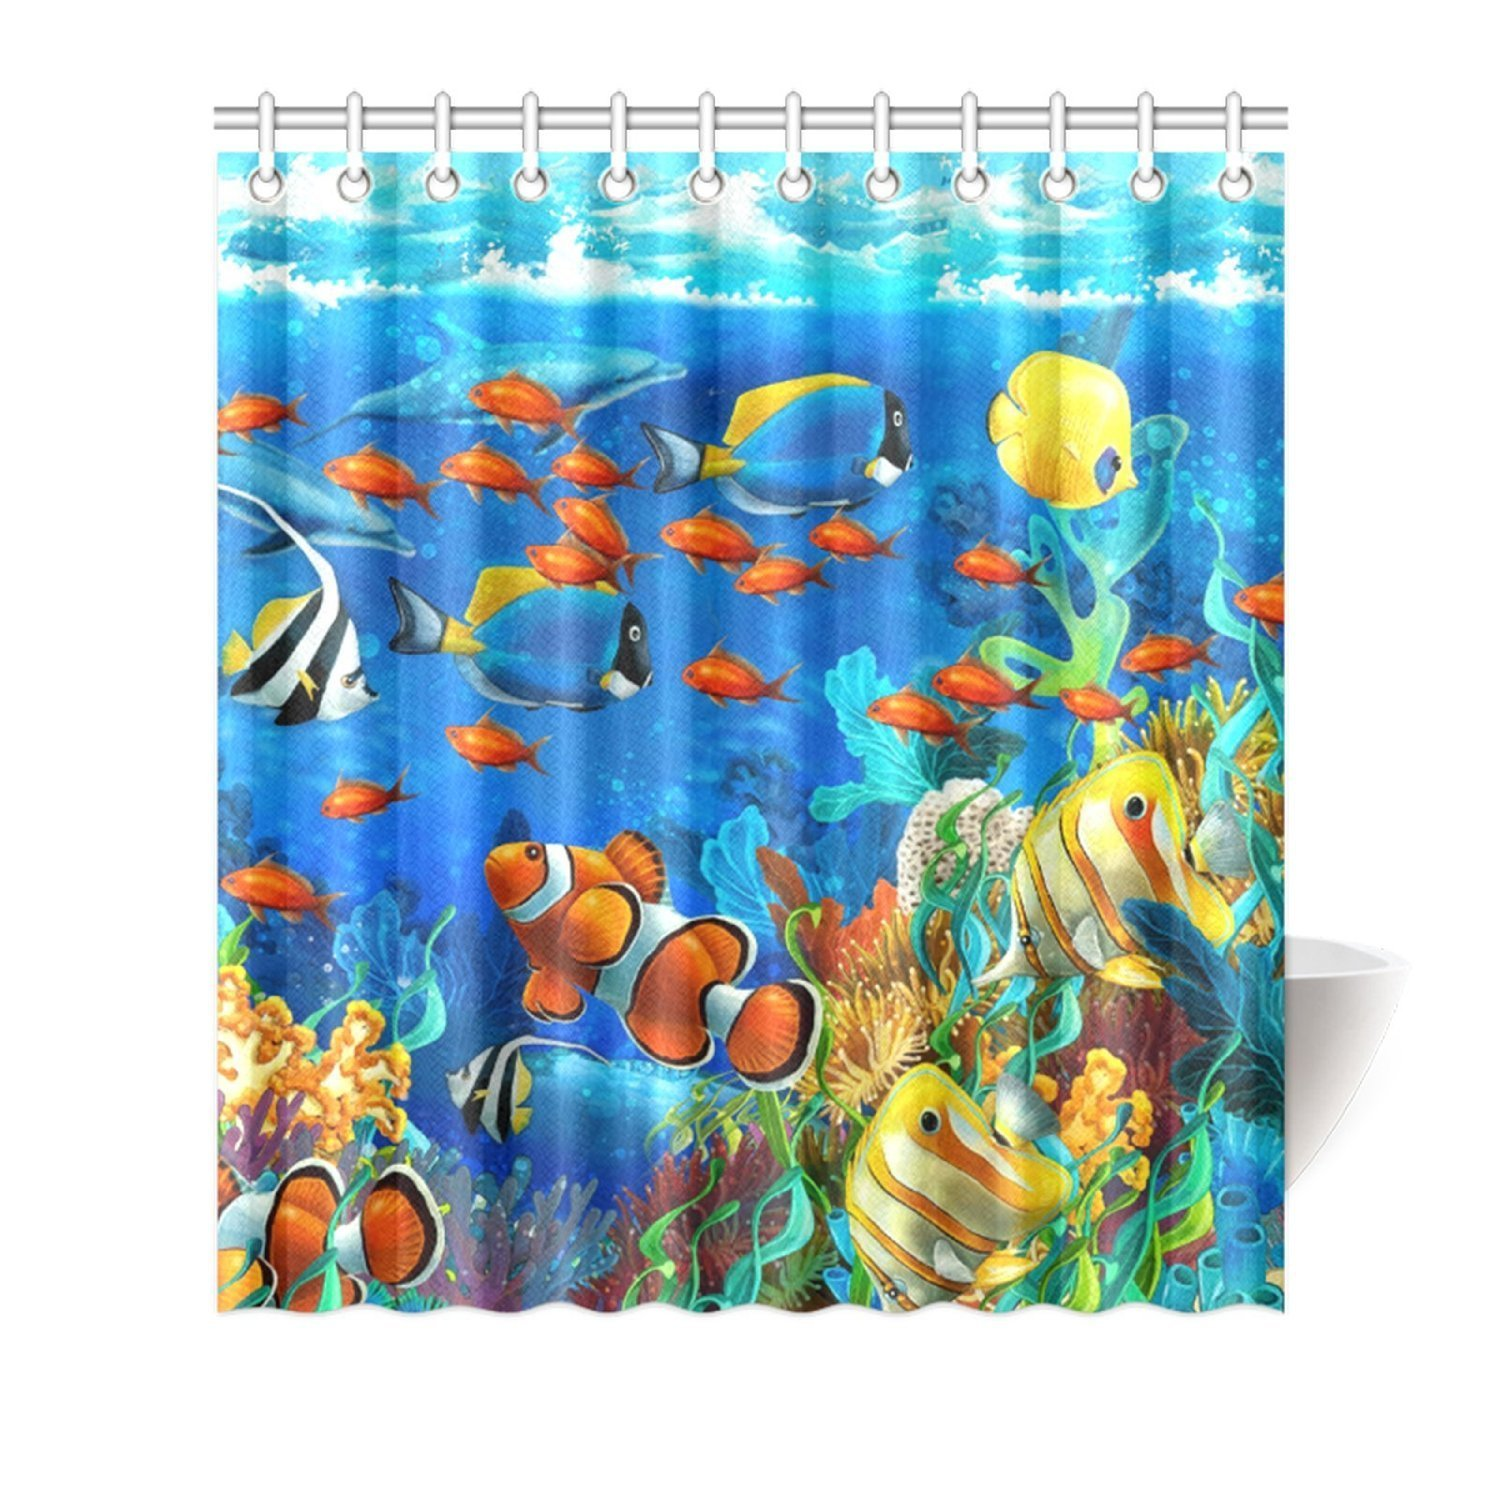 Blue Fish Shower Curtain Promotion-Shop for Promotional Blue Fish ...